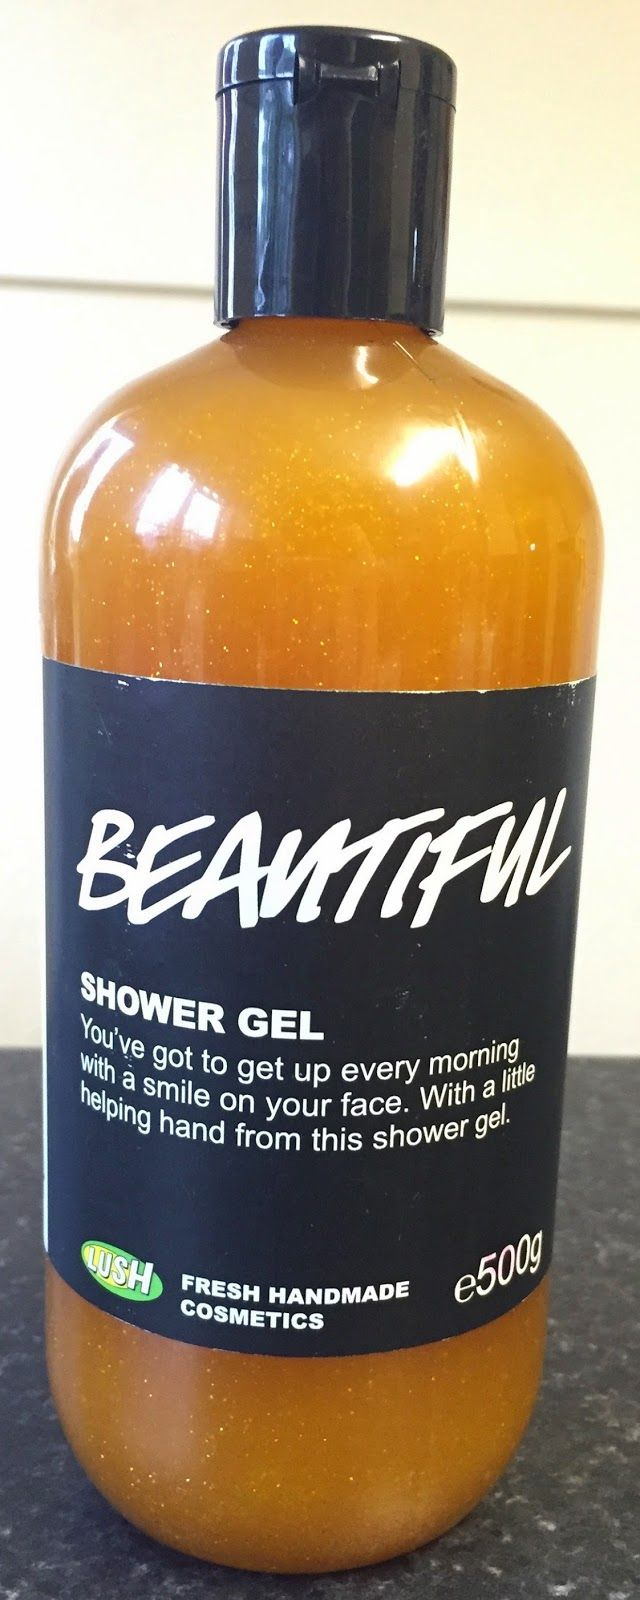 All Things Lush UK: Beautiful Shower Gel